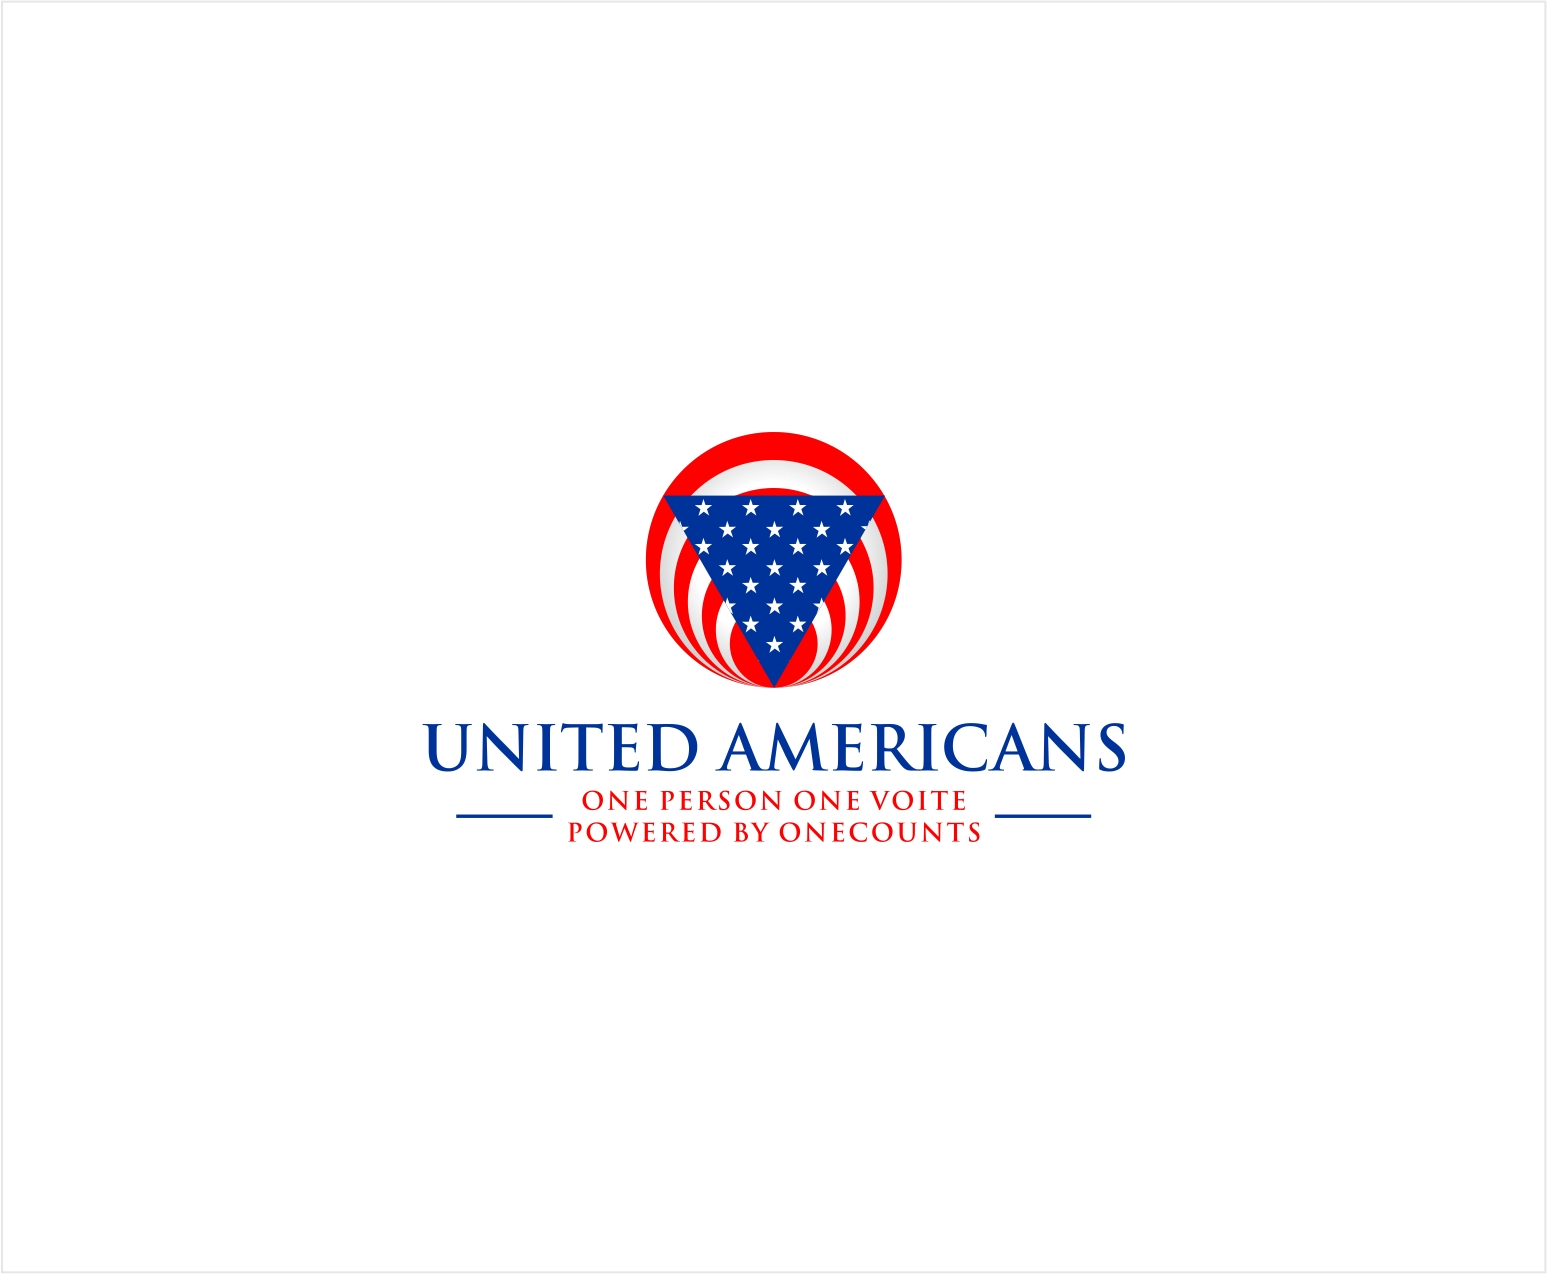 Logo Design by haidu - Entry No. 4 in the Logo Design Contest Creative Logo Design for United Americans.